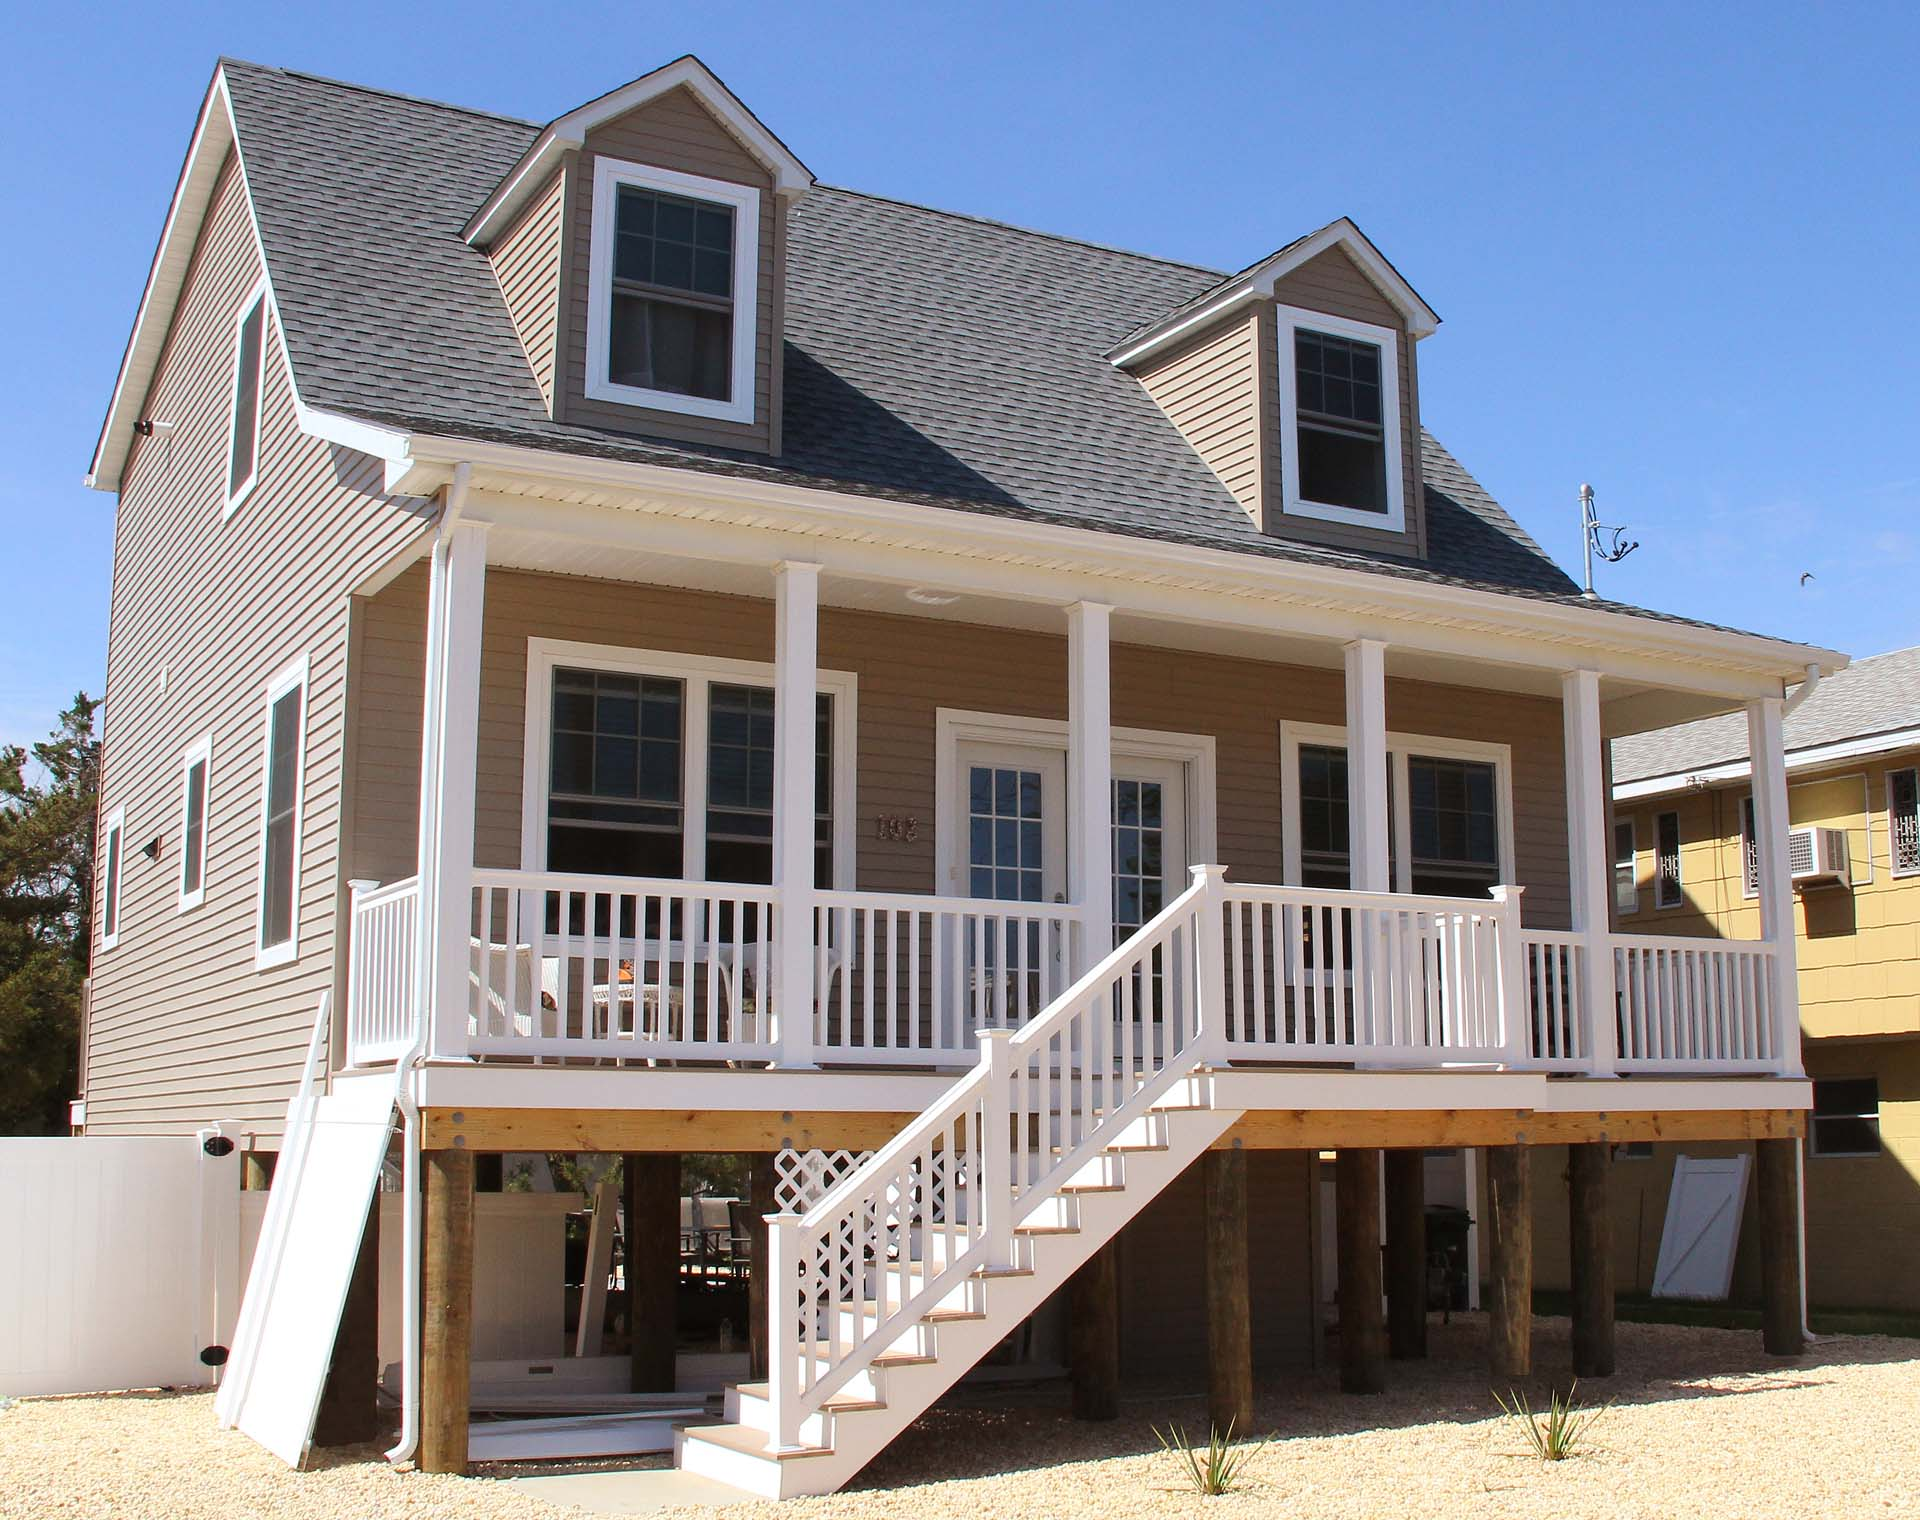 Modular beach style custom homes gallery zarrilli homes for Cape cod model homes